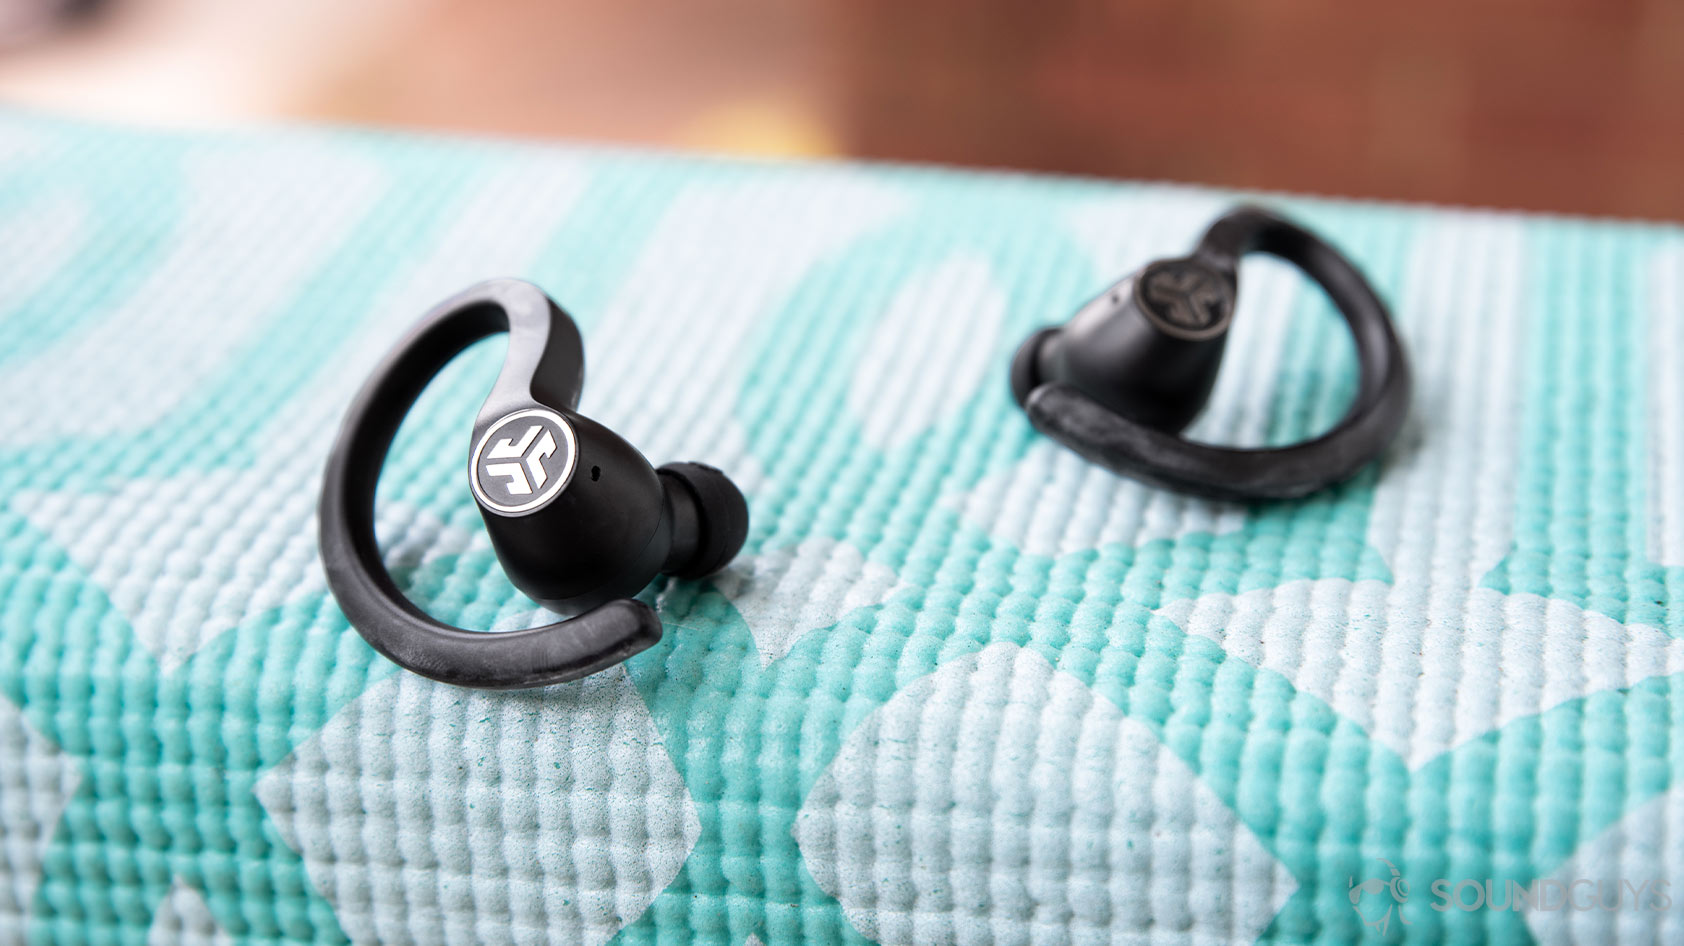 Best running headphones of 2019: Bose, Jaybird, and Jabra